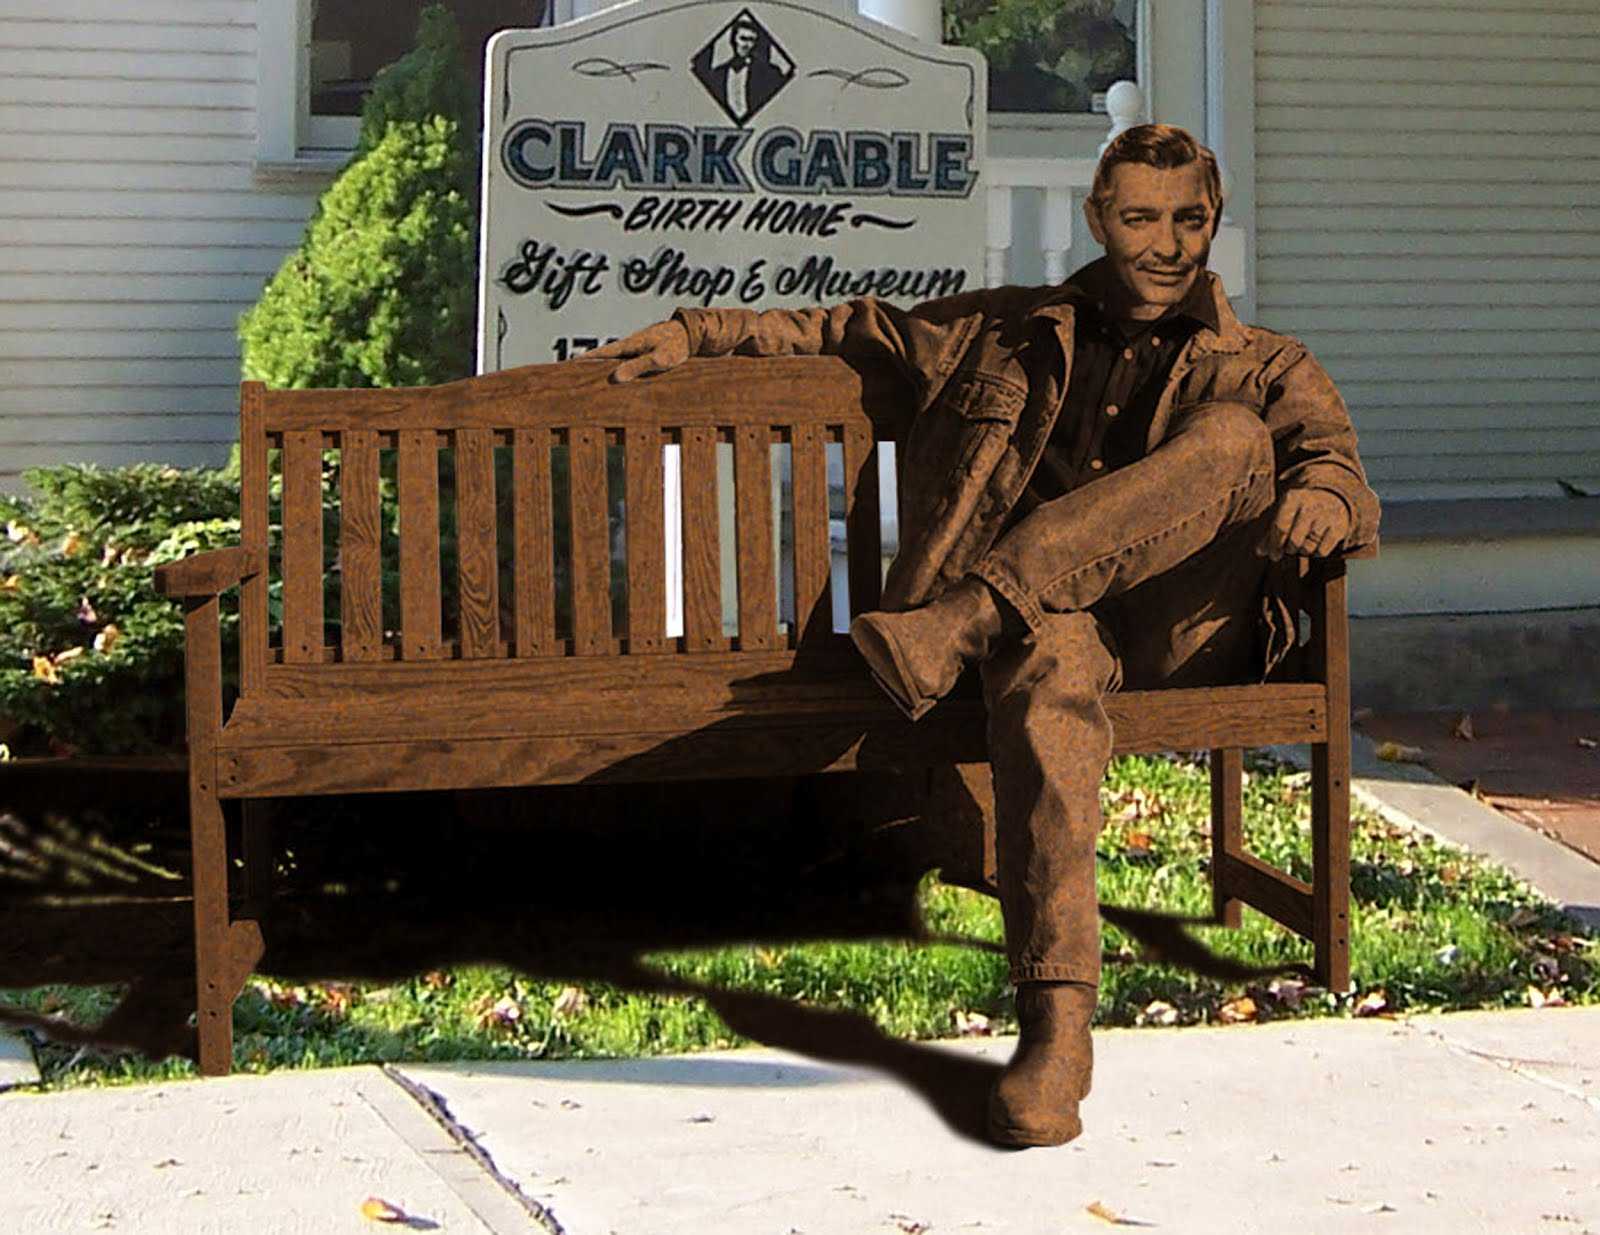 a classic movie blog: the kickstarter campaign to put clark gable